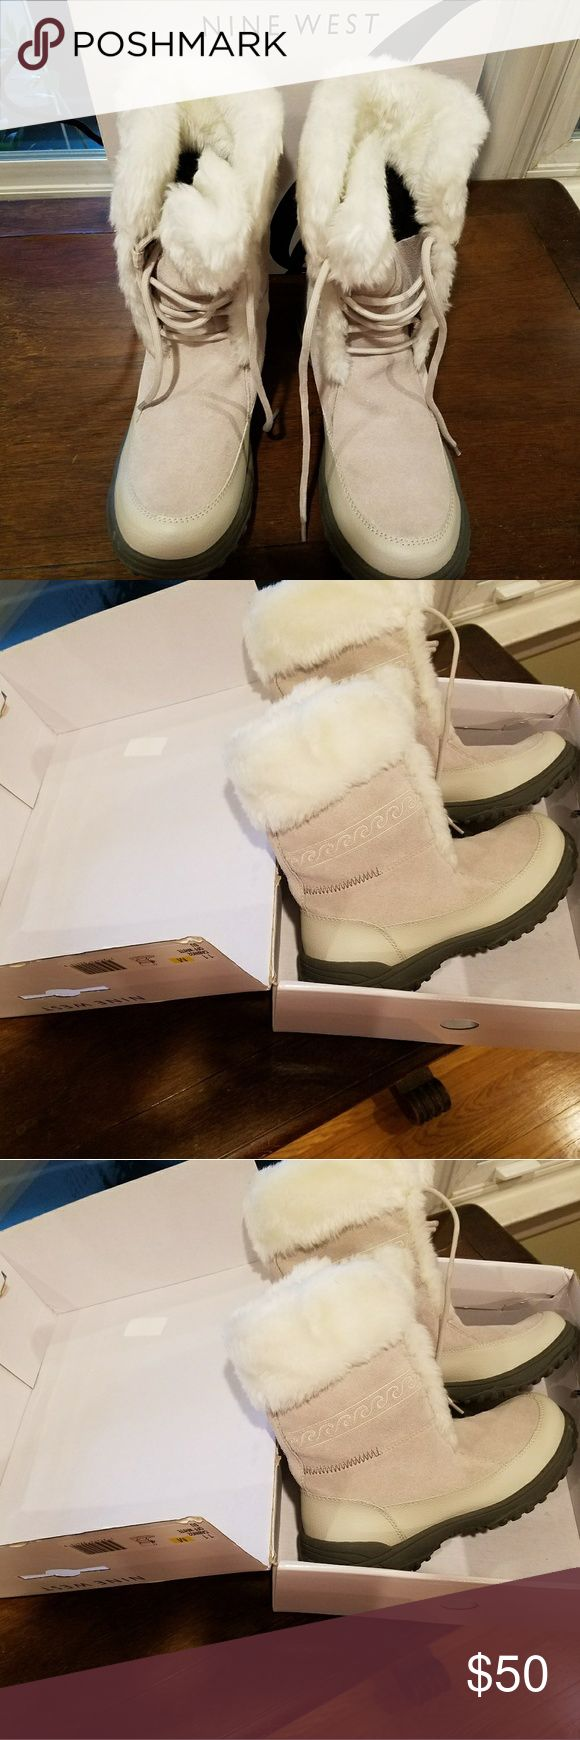 Nine west 11m cabino2 off white snow boot Off white snow boots brand new in box ...real soft ...too tight for me need a 12 Nine West Shoes Winter & Rain Boots